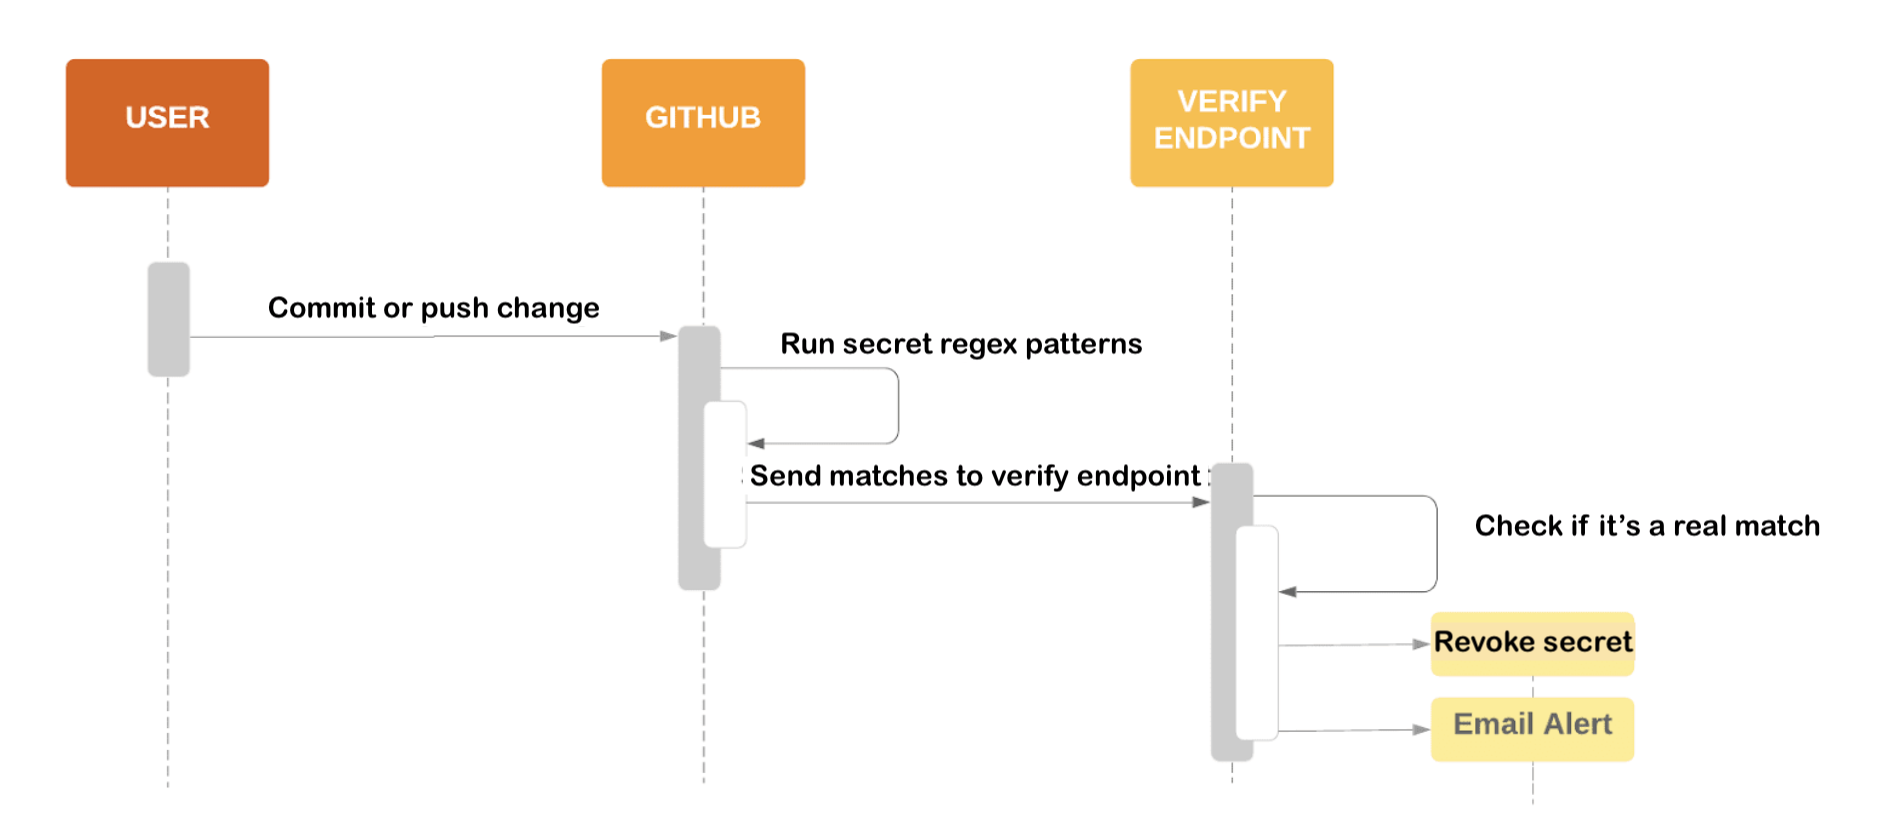 Flow diagram showing the process of scanning for a secret and sending matches to a service provider's verify endpoint